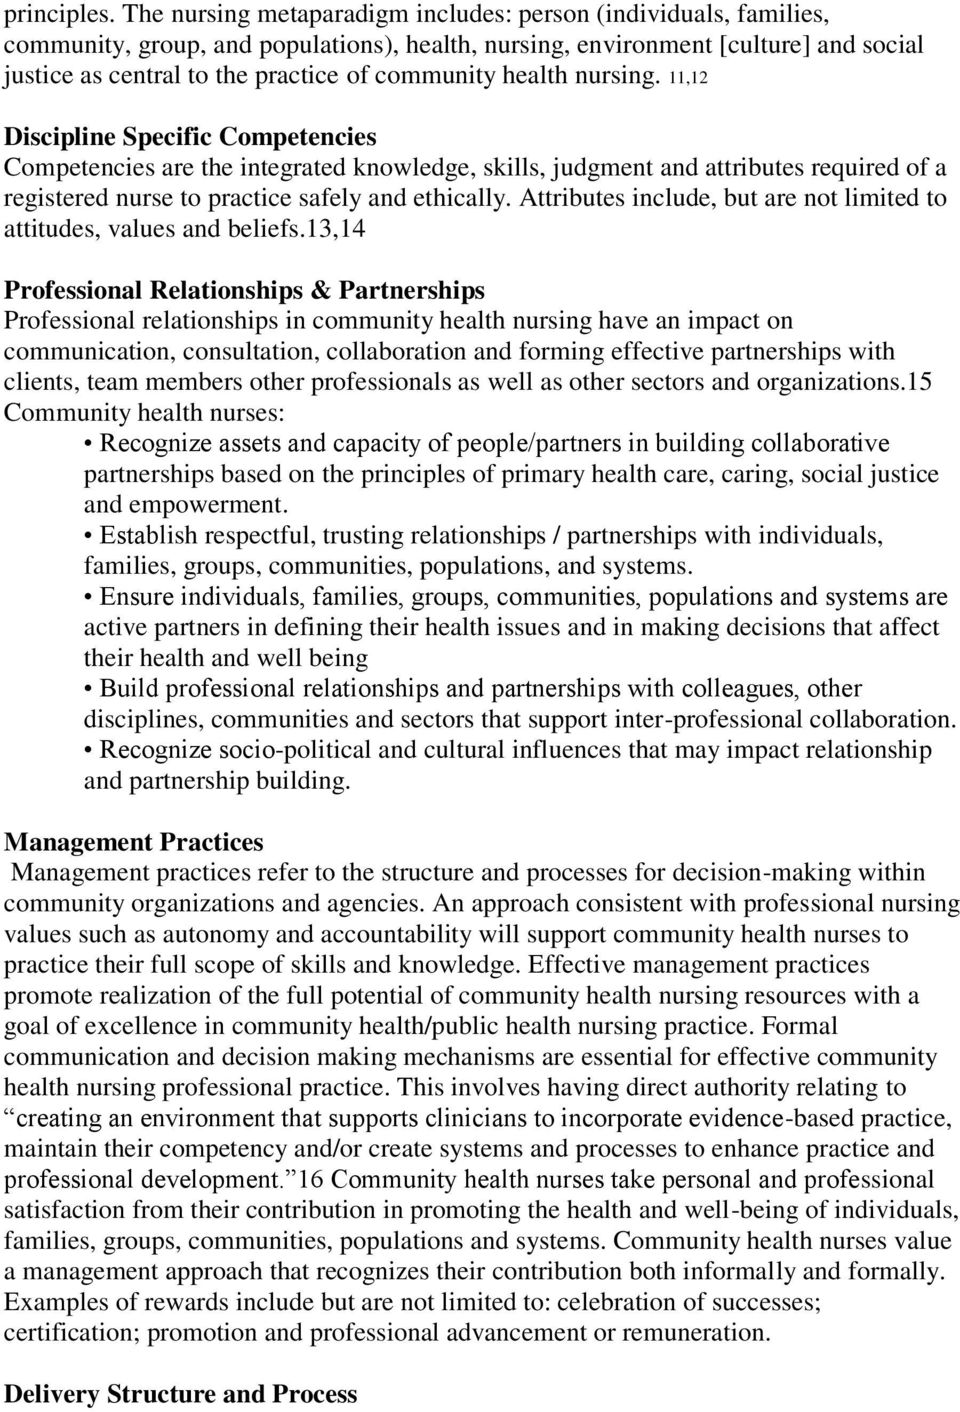 health nursing. 11,12 Discipline Specific Competencies Competencies are the integrated knowledge, skills, judgment and attributes required of a registered nurse to practice safely and ethically.